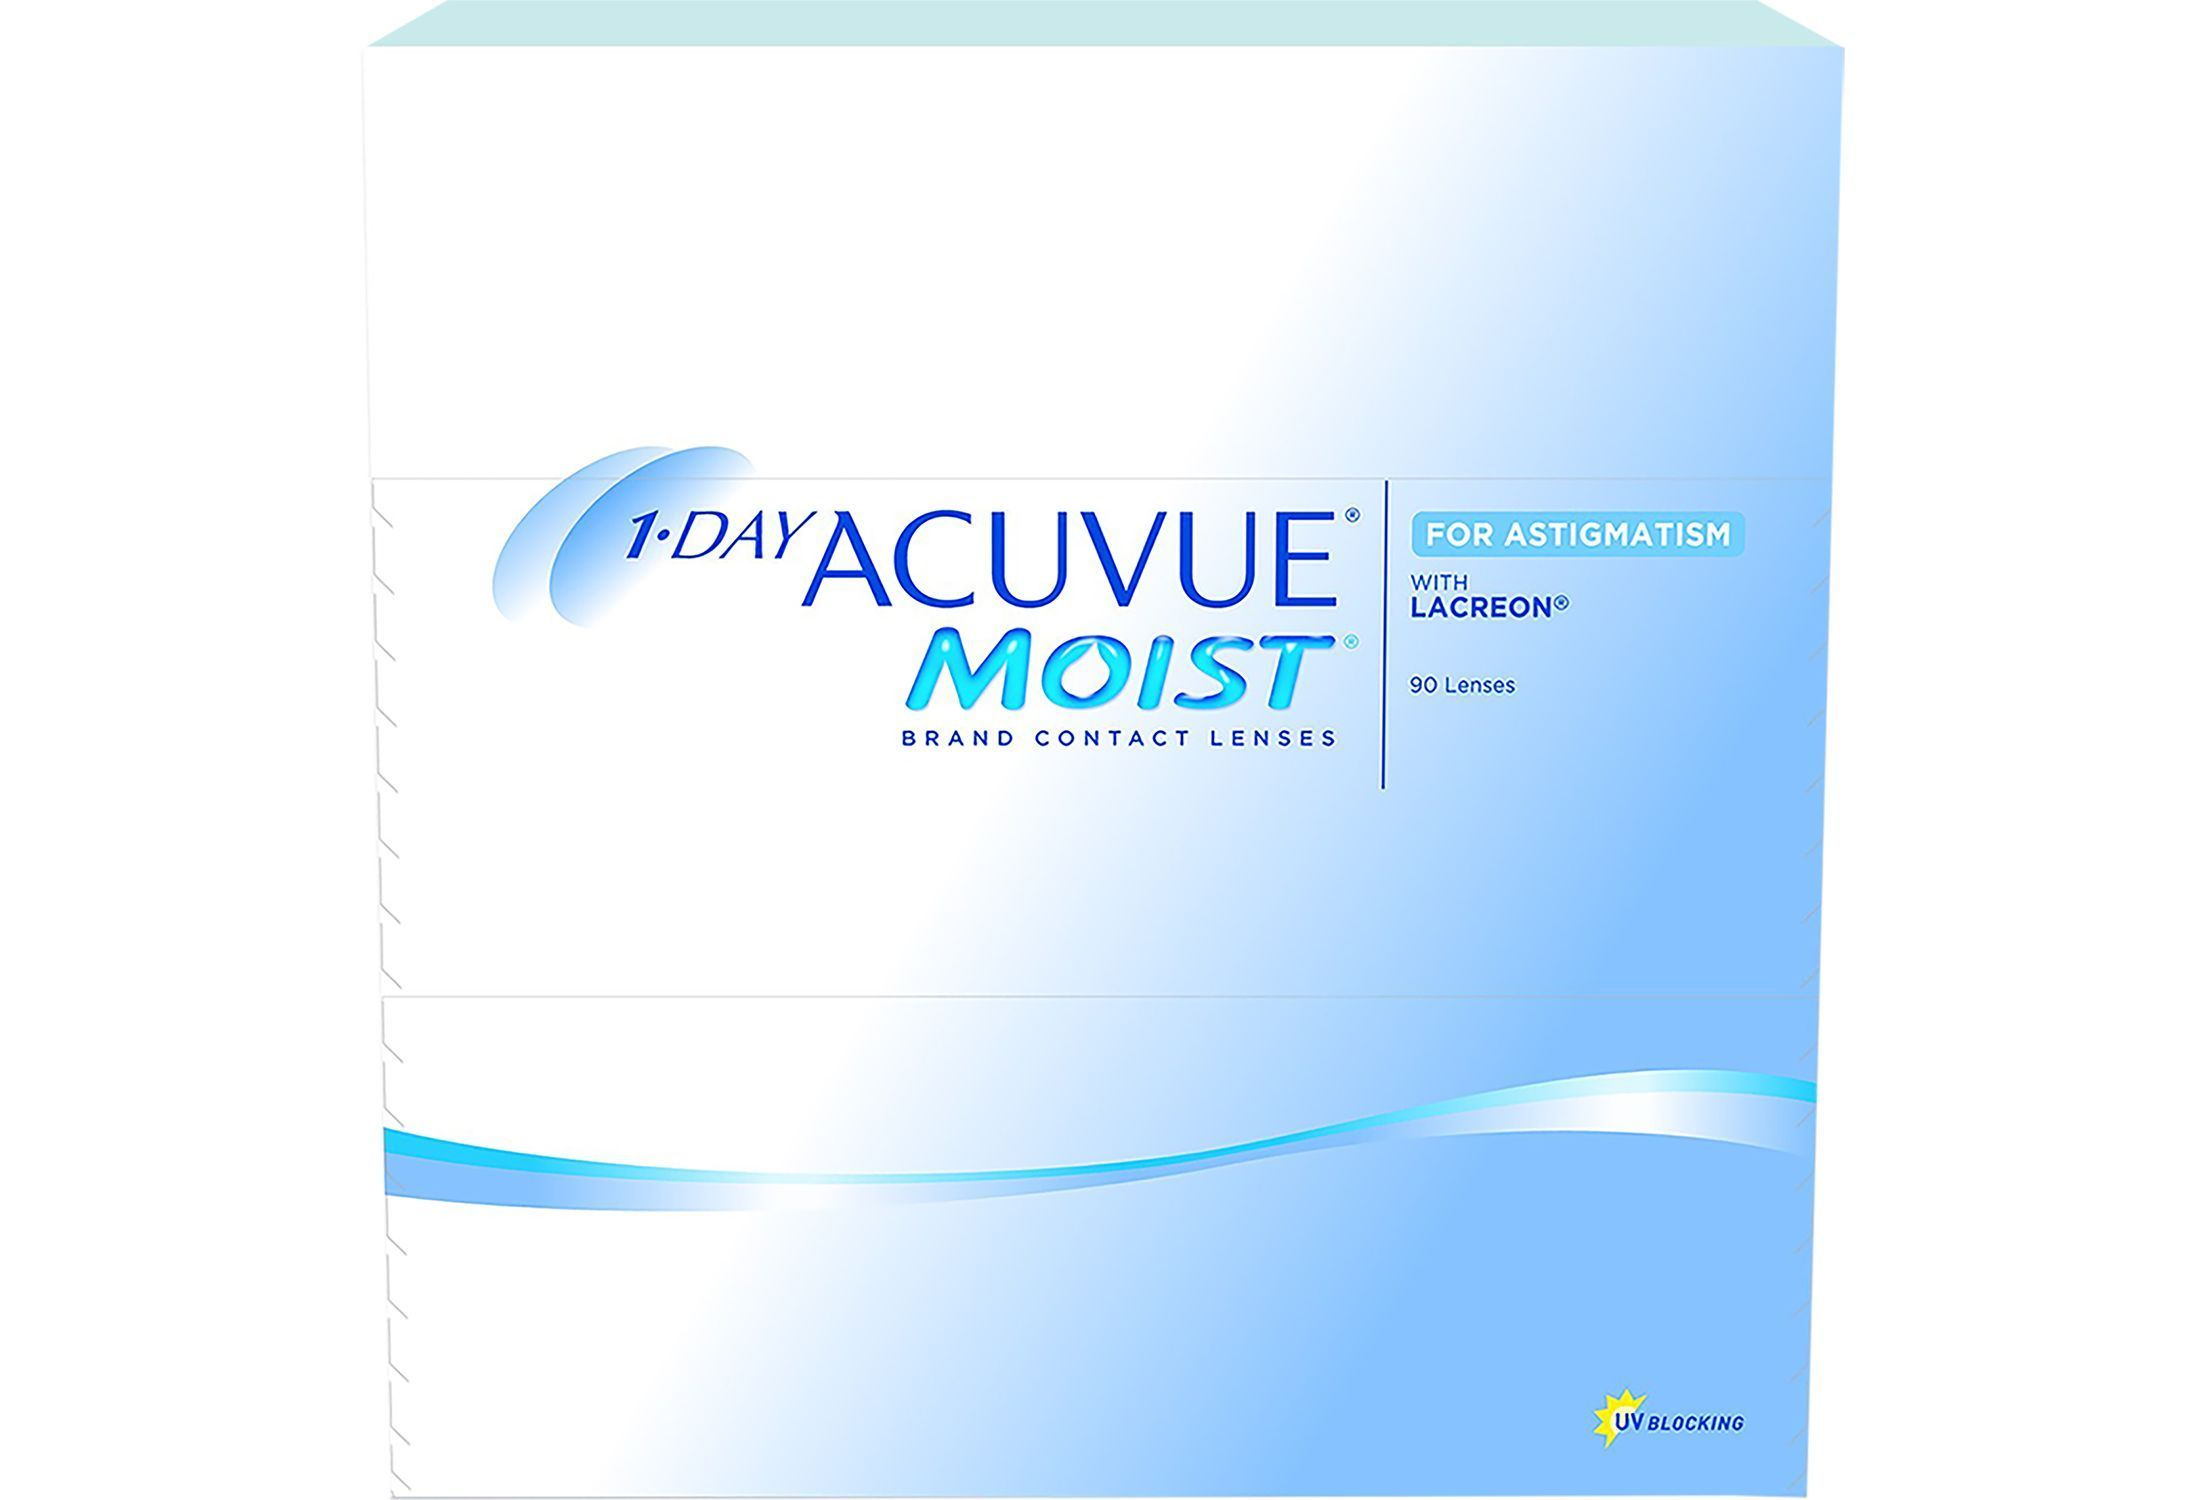 1-DAY ACUVUE MOIST for ASTIGMATISM 90 stk